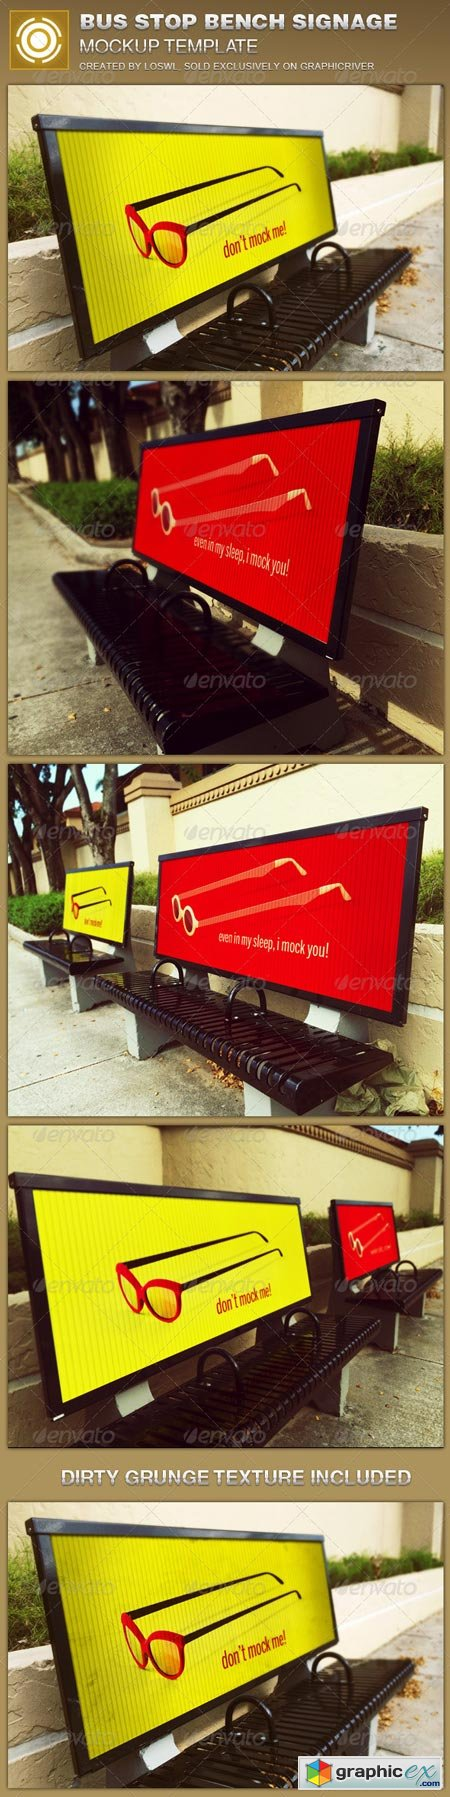 Corrugated Bus Stop Bench Signage Mockup Template 8688819